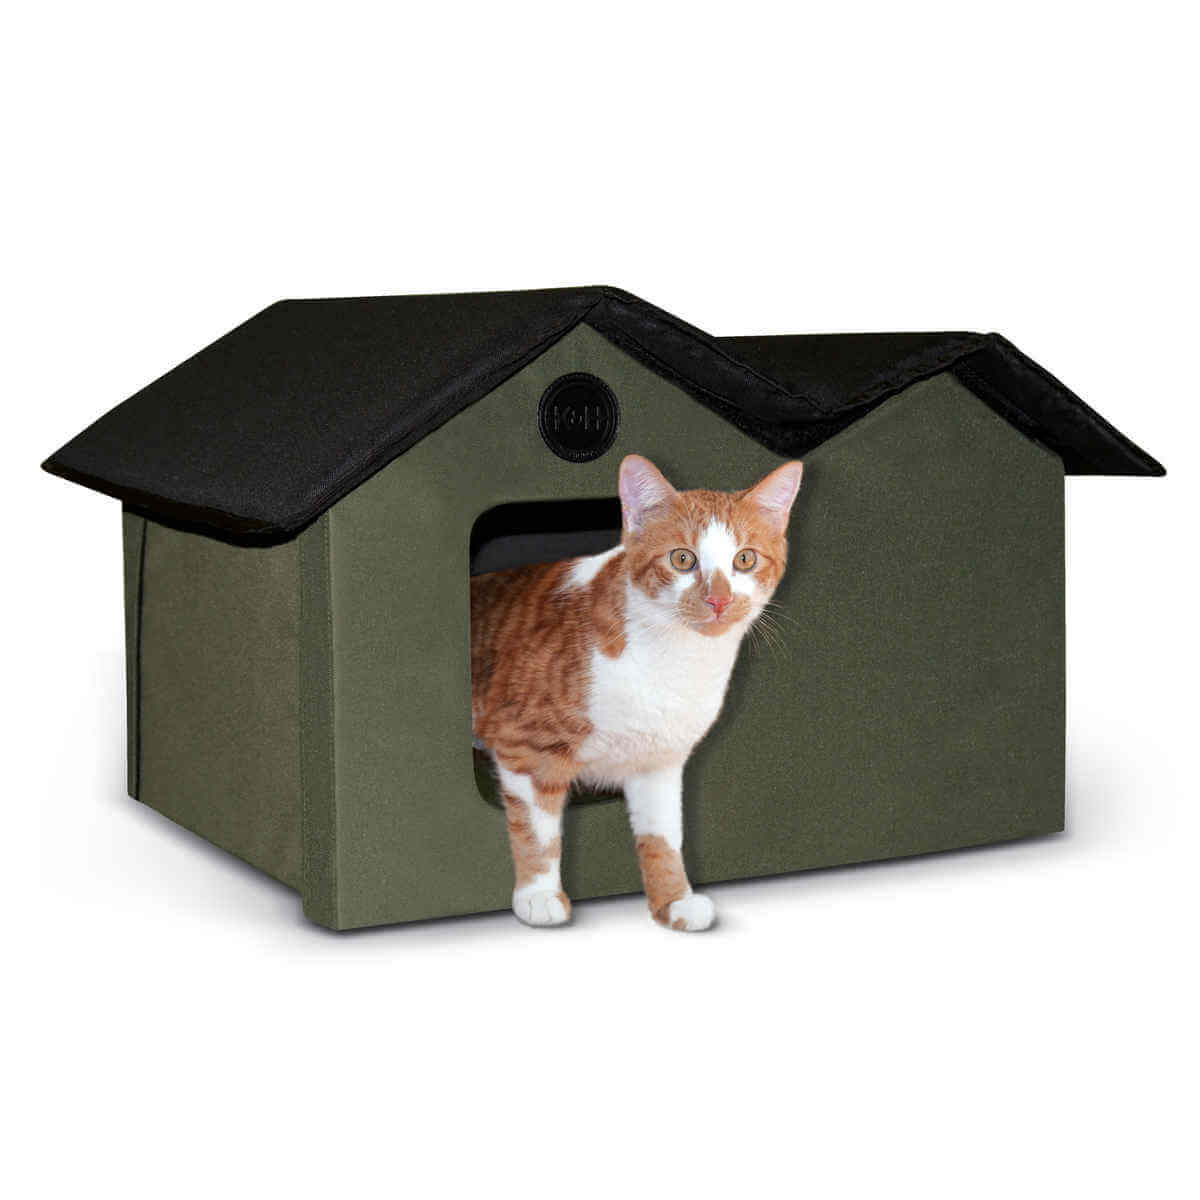 K&H Pet Products Unheated Outdoor Kitty House Extra Wide Olive / Black 21.5